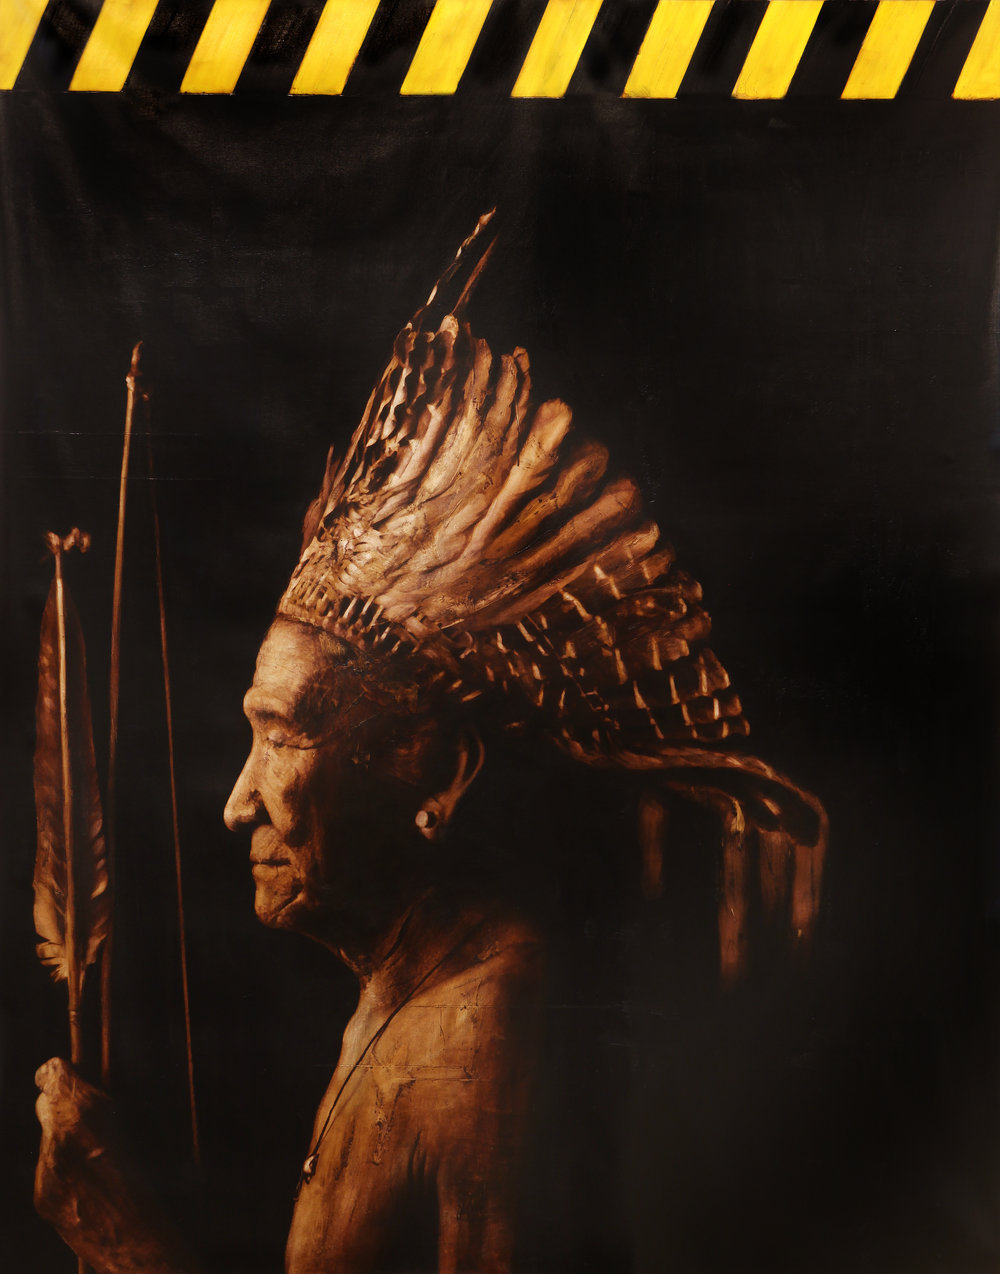 Xingu Chief  Mixed Media / Oil on Canvas 203 x 170 cm / 78 x 66 in Ver I.: Collection of Verdens Gang / Norway Ver II.: Private Collection / London 1998